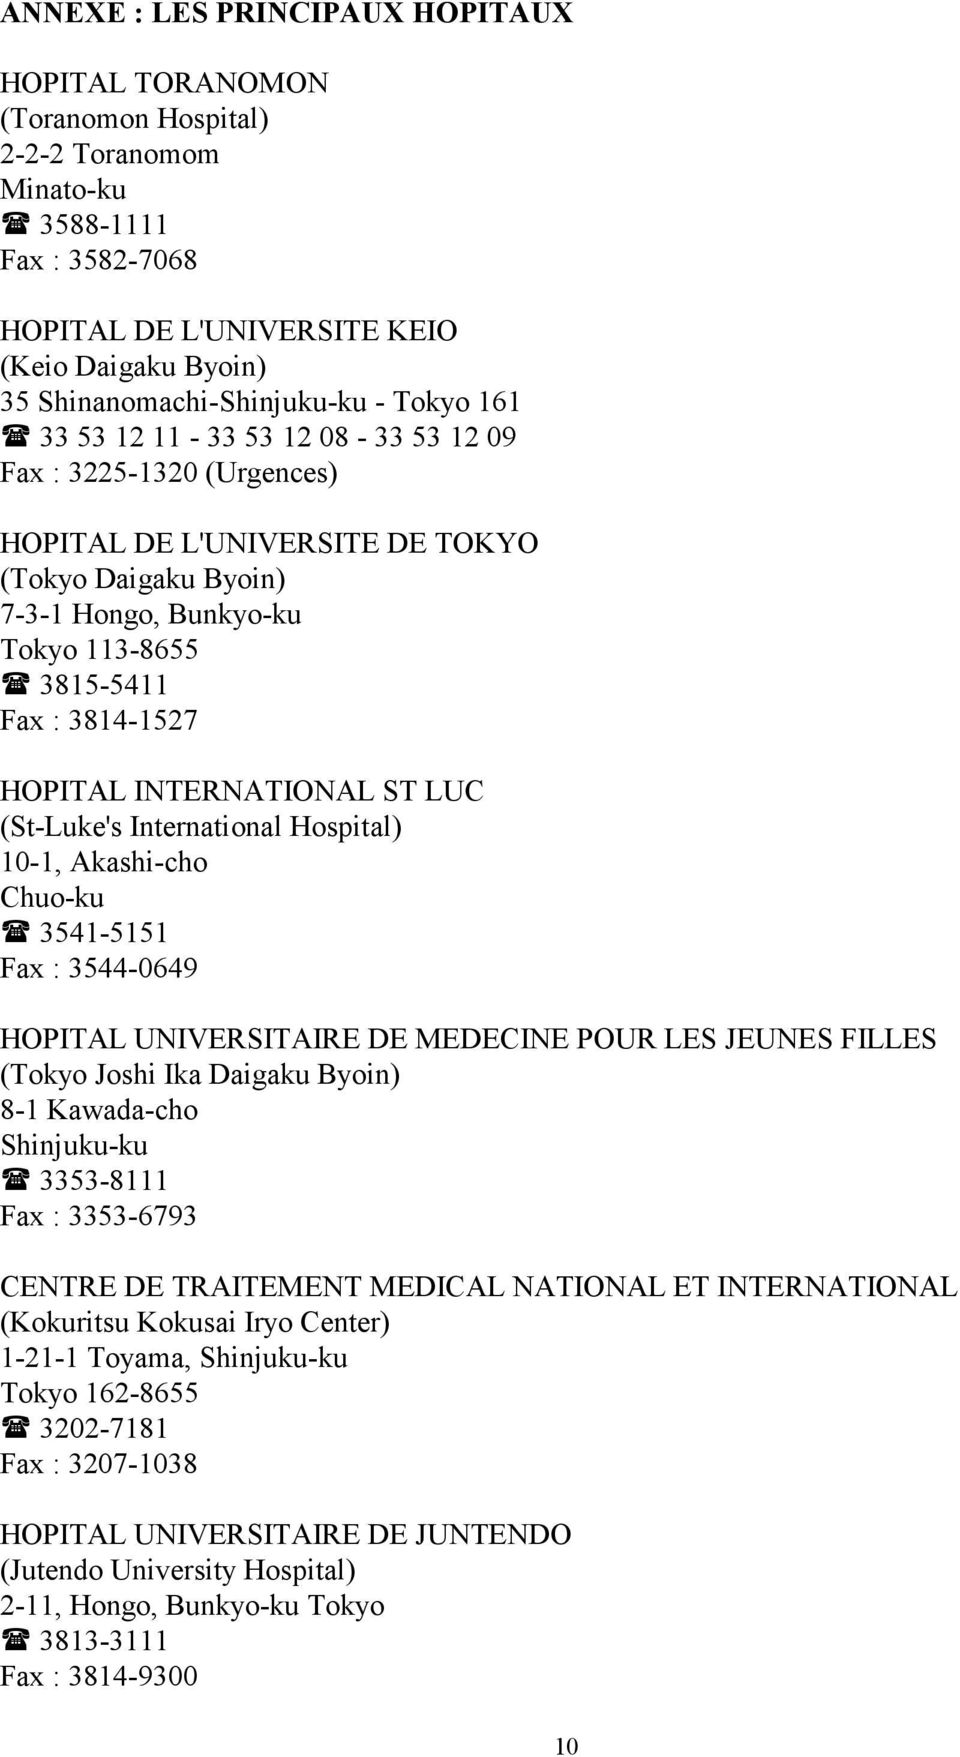 3815-5411 Fax : 3814-1527 HOPITAL INTERNATIONAL ST LUC (St-Luke's International Hospital) 10-1, Akashi-cho Chuo-ku 3541-5151 Fax : 3544-0649 HOPITAL UNIVERSITAIRE DE MEDECINE POUR LES JEUNES FILLES